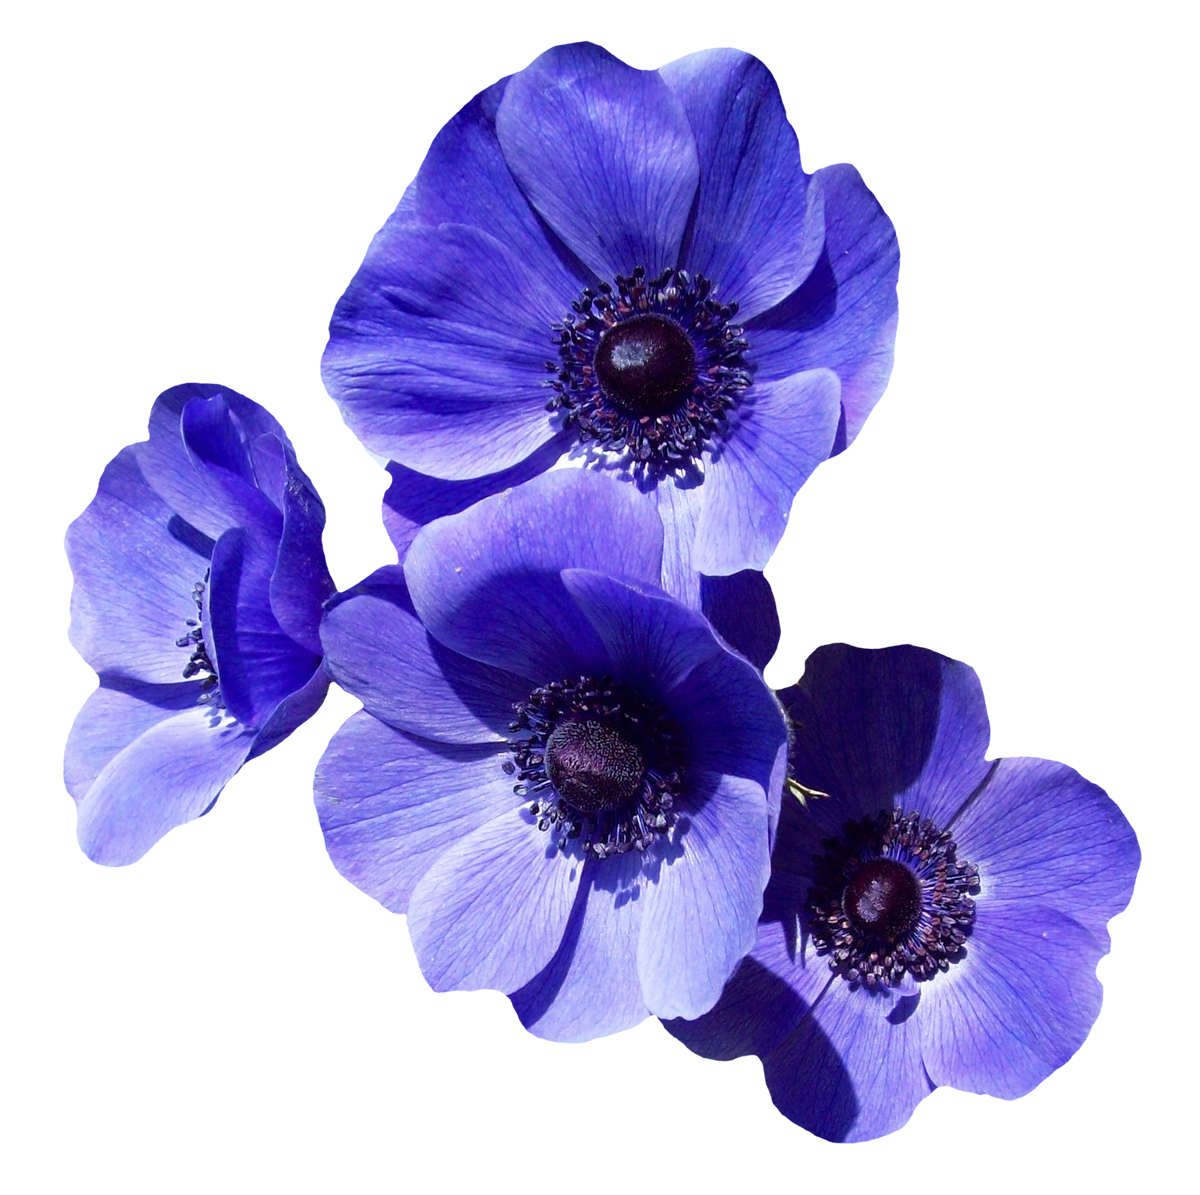 Purple Flower PNG Image